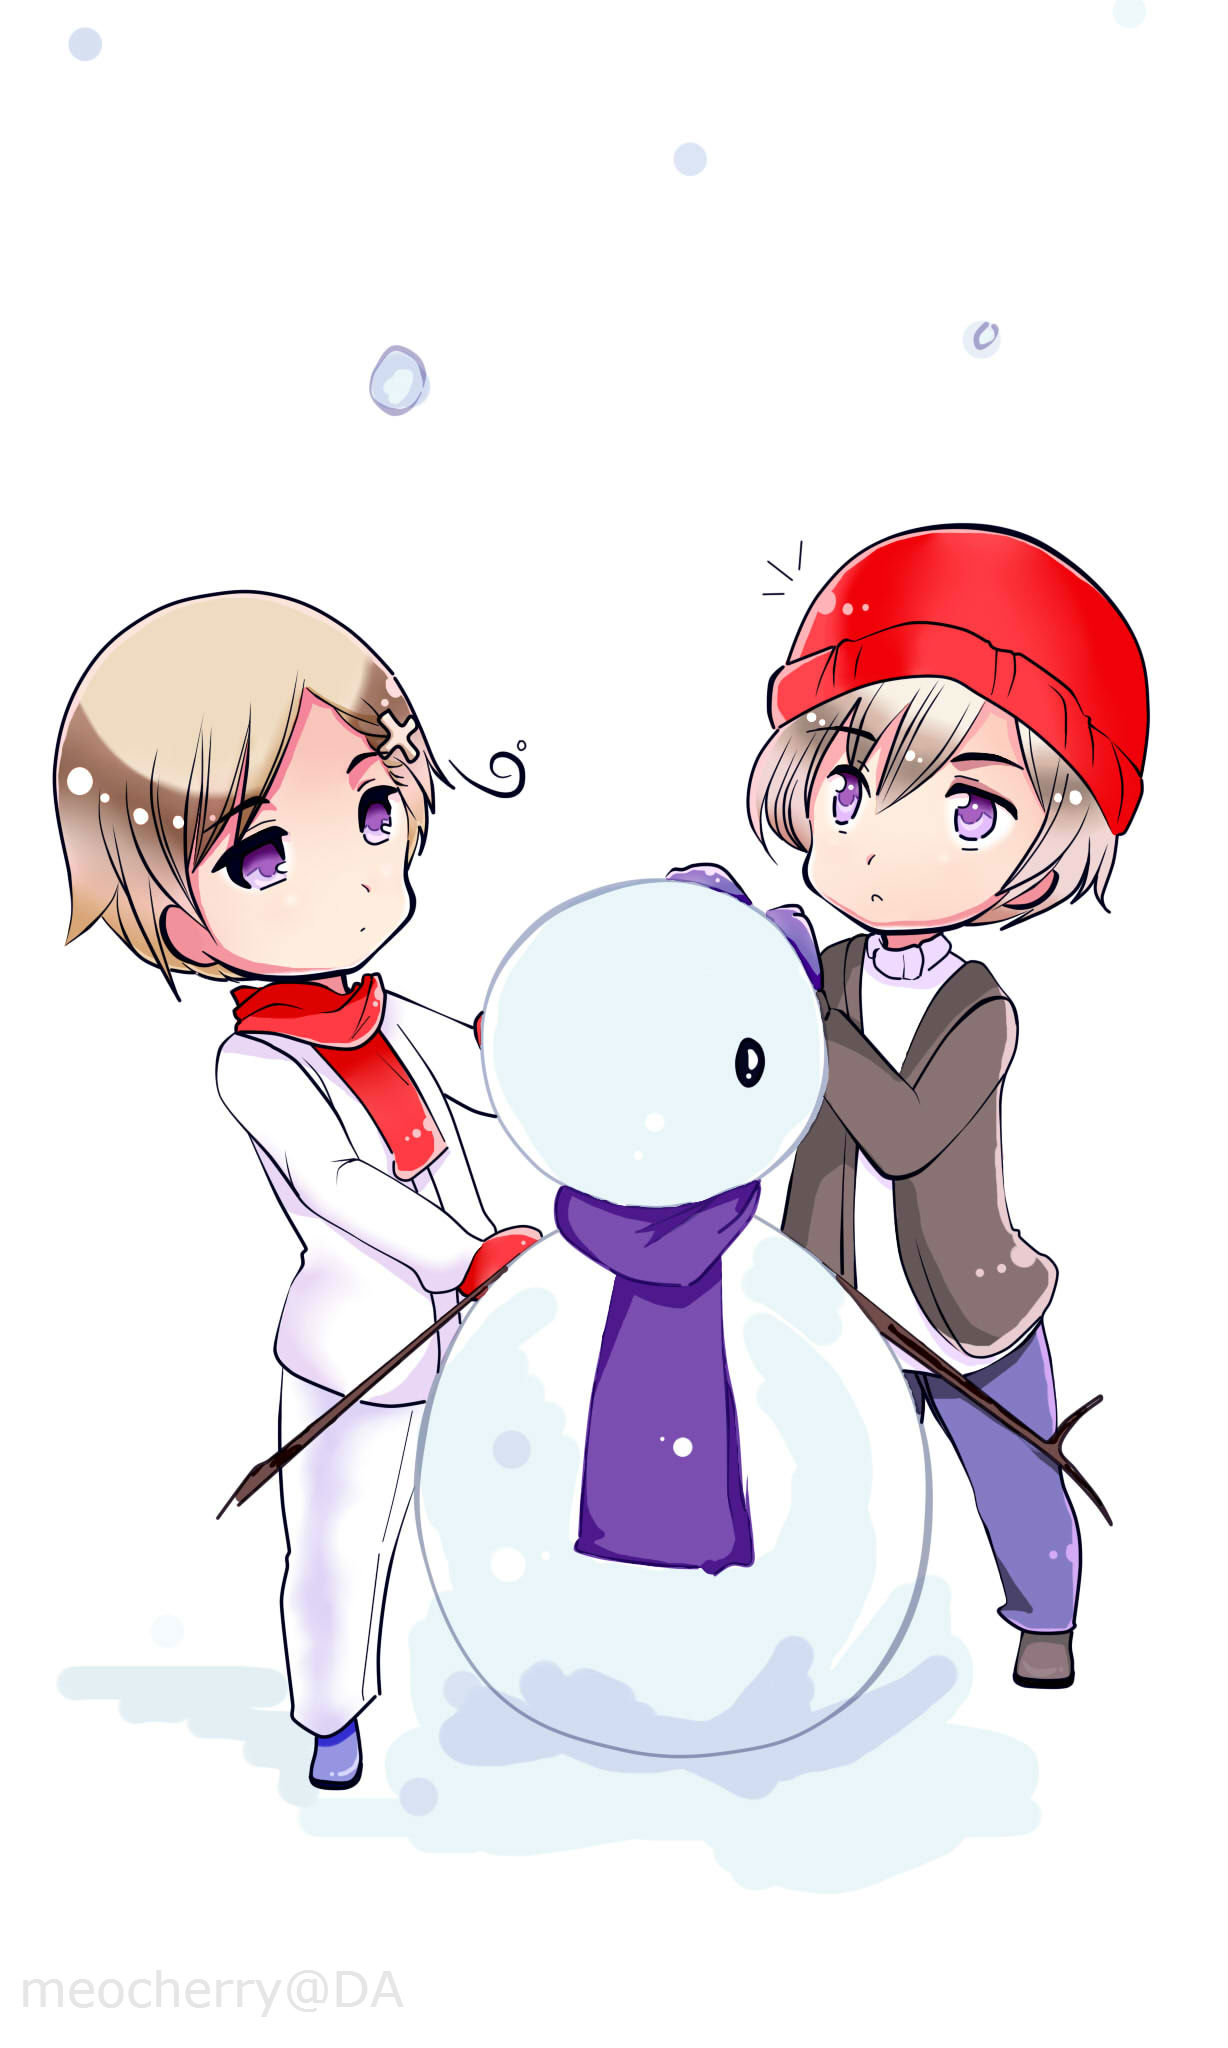 Iceland Hetalia Name Hetalia Request Iceland And Norway By Meocherry D